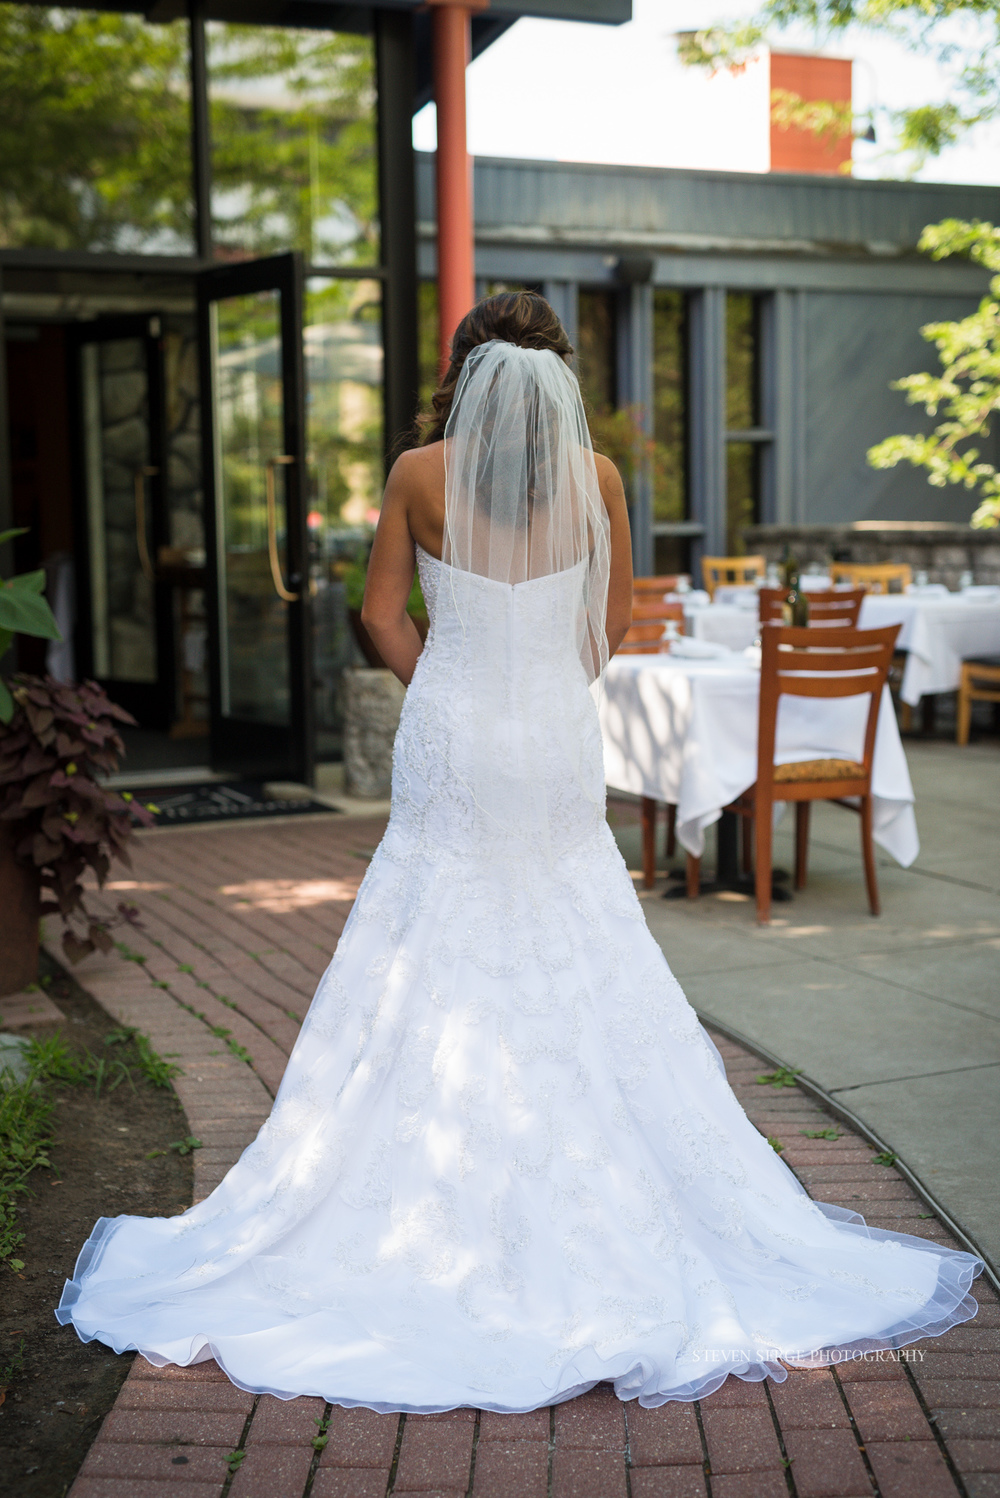 Clarks-Summit-PA-NEPA-Wedding-Photographer-Inn-Abingtons-Party-photography-steven-serge-70.jpg